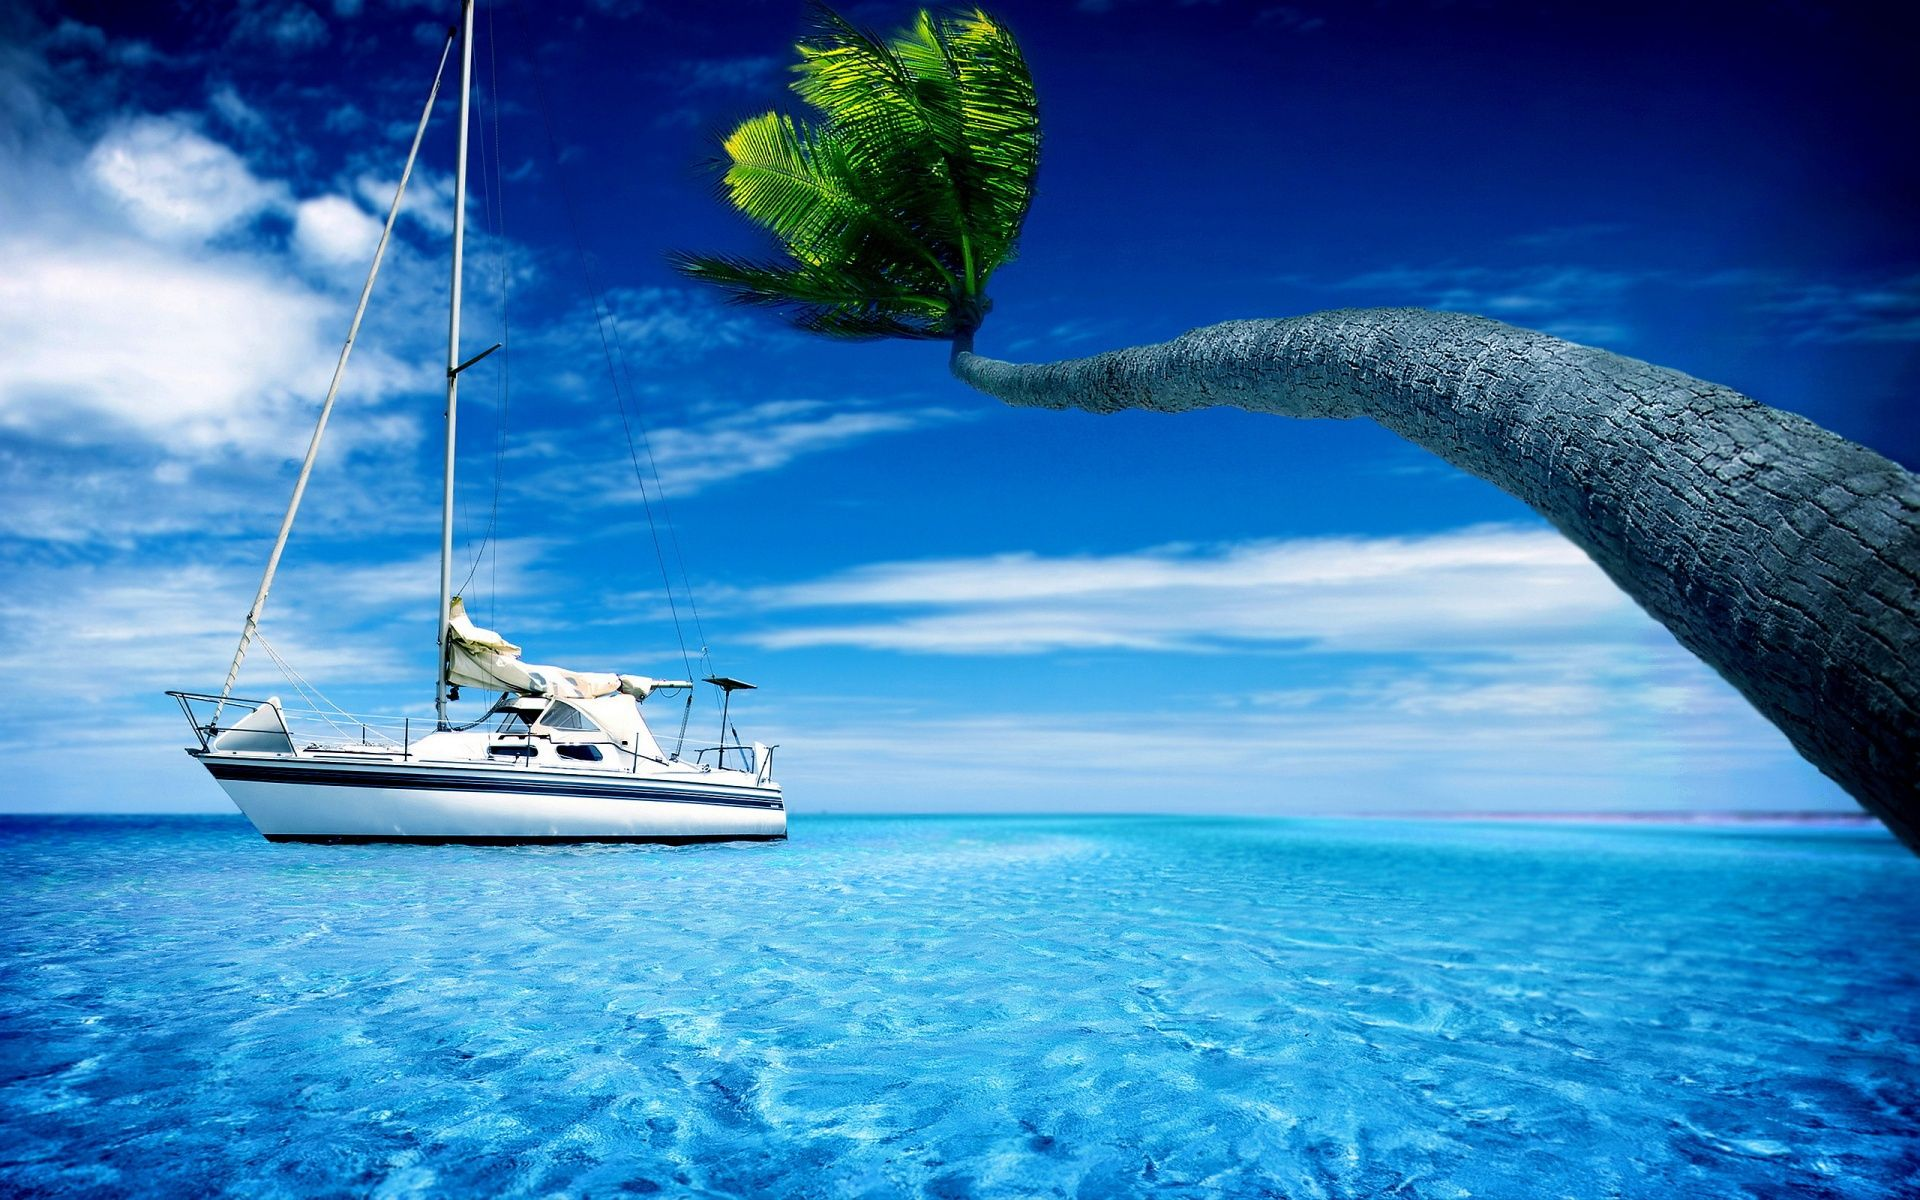 hungry for sailboat wallpaper - photo #36